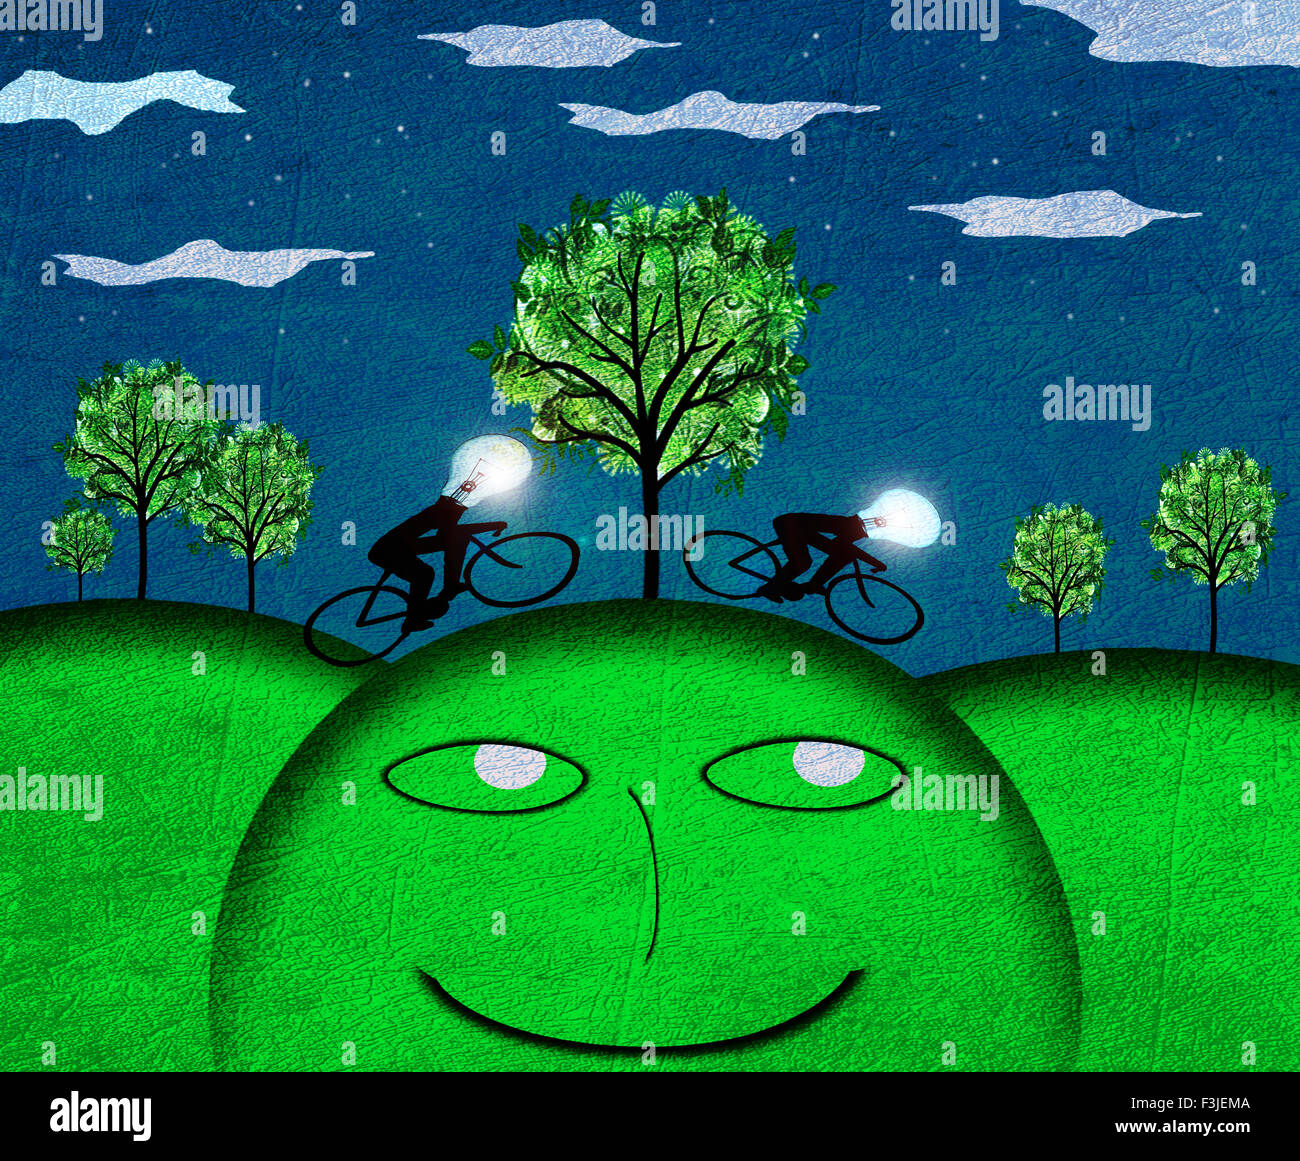 creativity concept nocturne landscape digital illustration - Stock Image